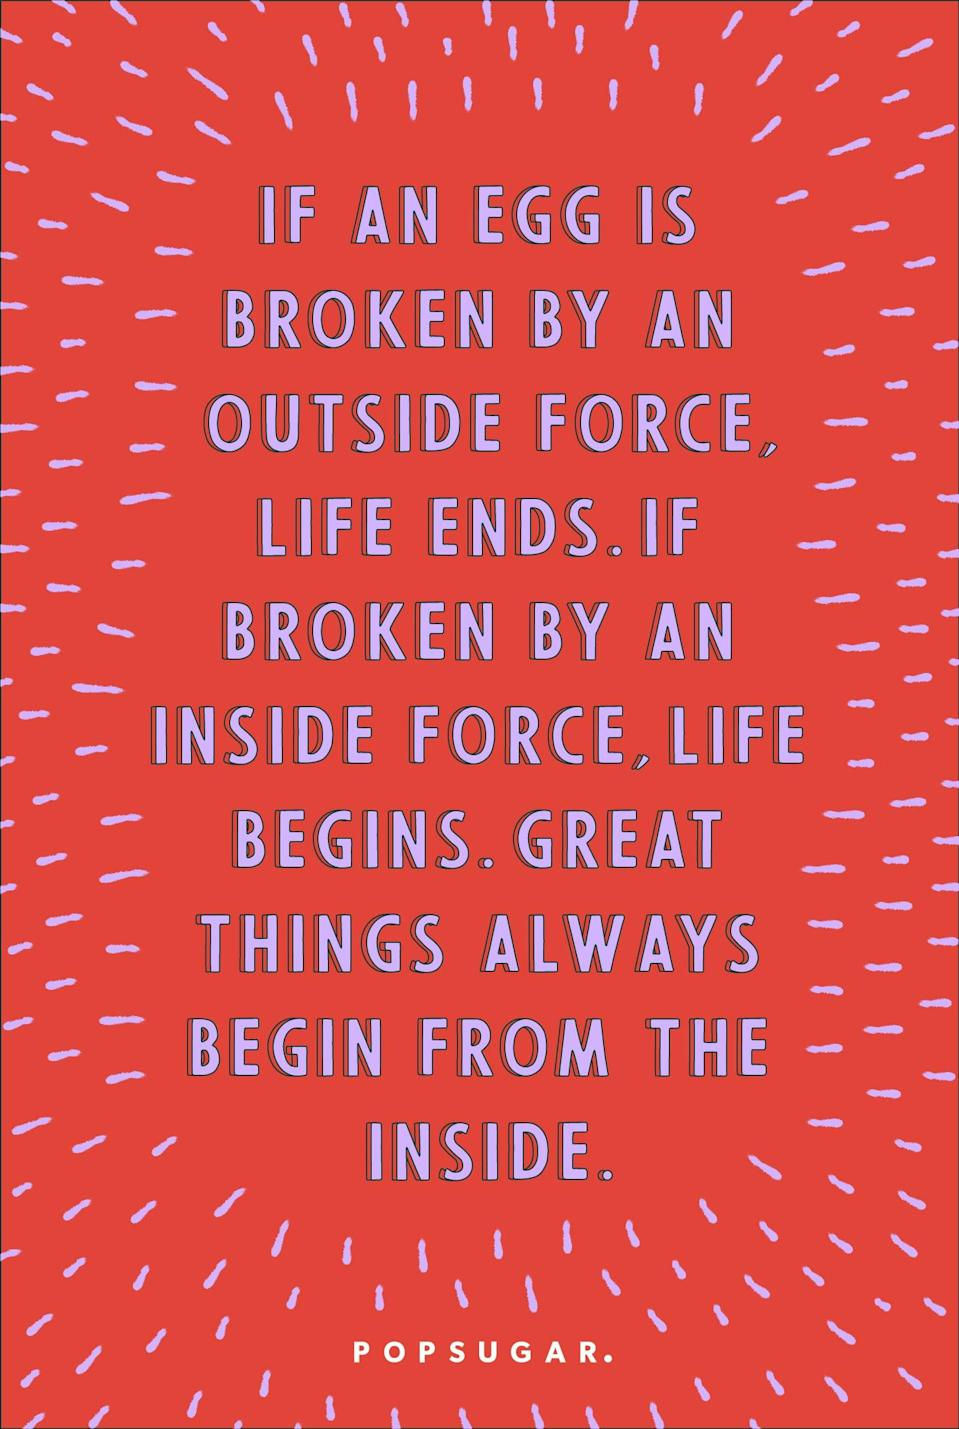 """<p><b>Quote:</b></p> <p>""""If an egg is broken by an outside force, life ends. If broken by an inside force, life begins. Great things always begin from the inside.""""</p> <p><b>Lesson to learn</b>:</p> <p>Real change can only come from within.</p>"""